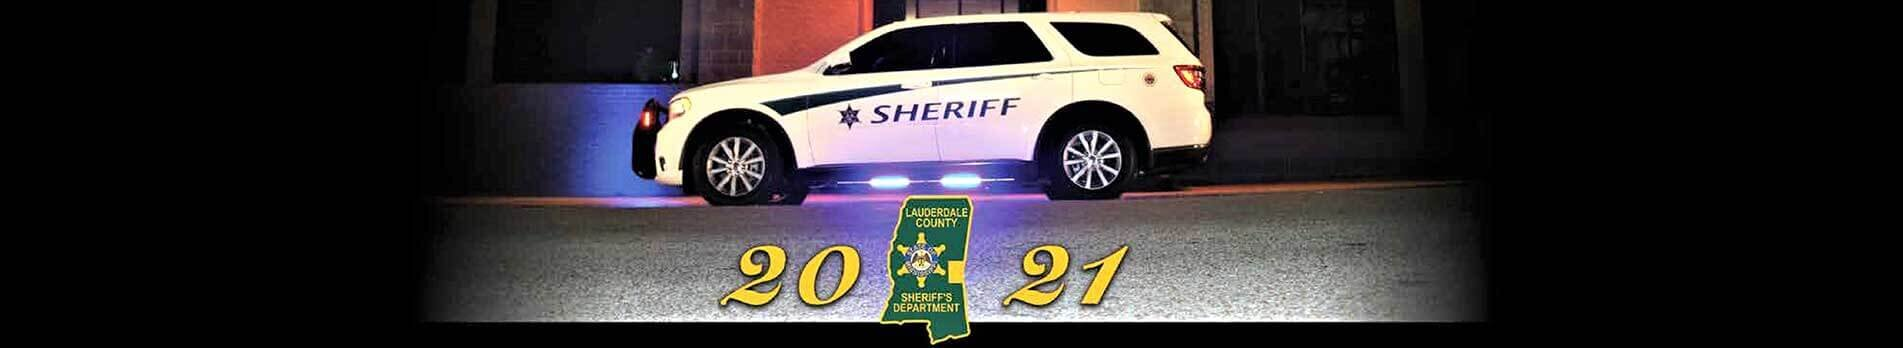 Lauderdale Sheriff vehicle 2021